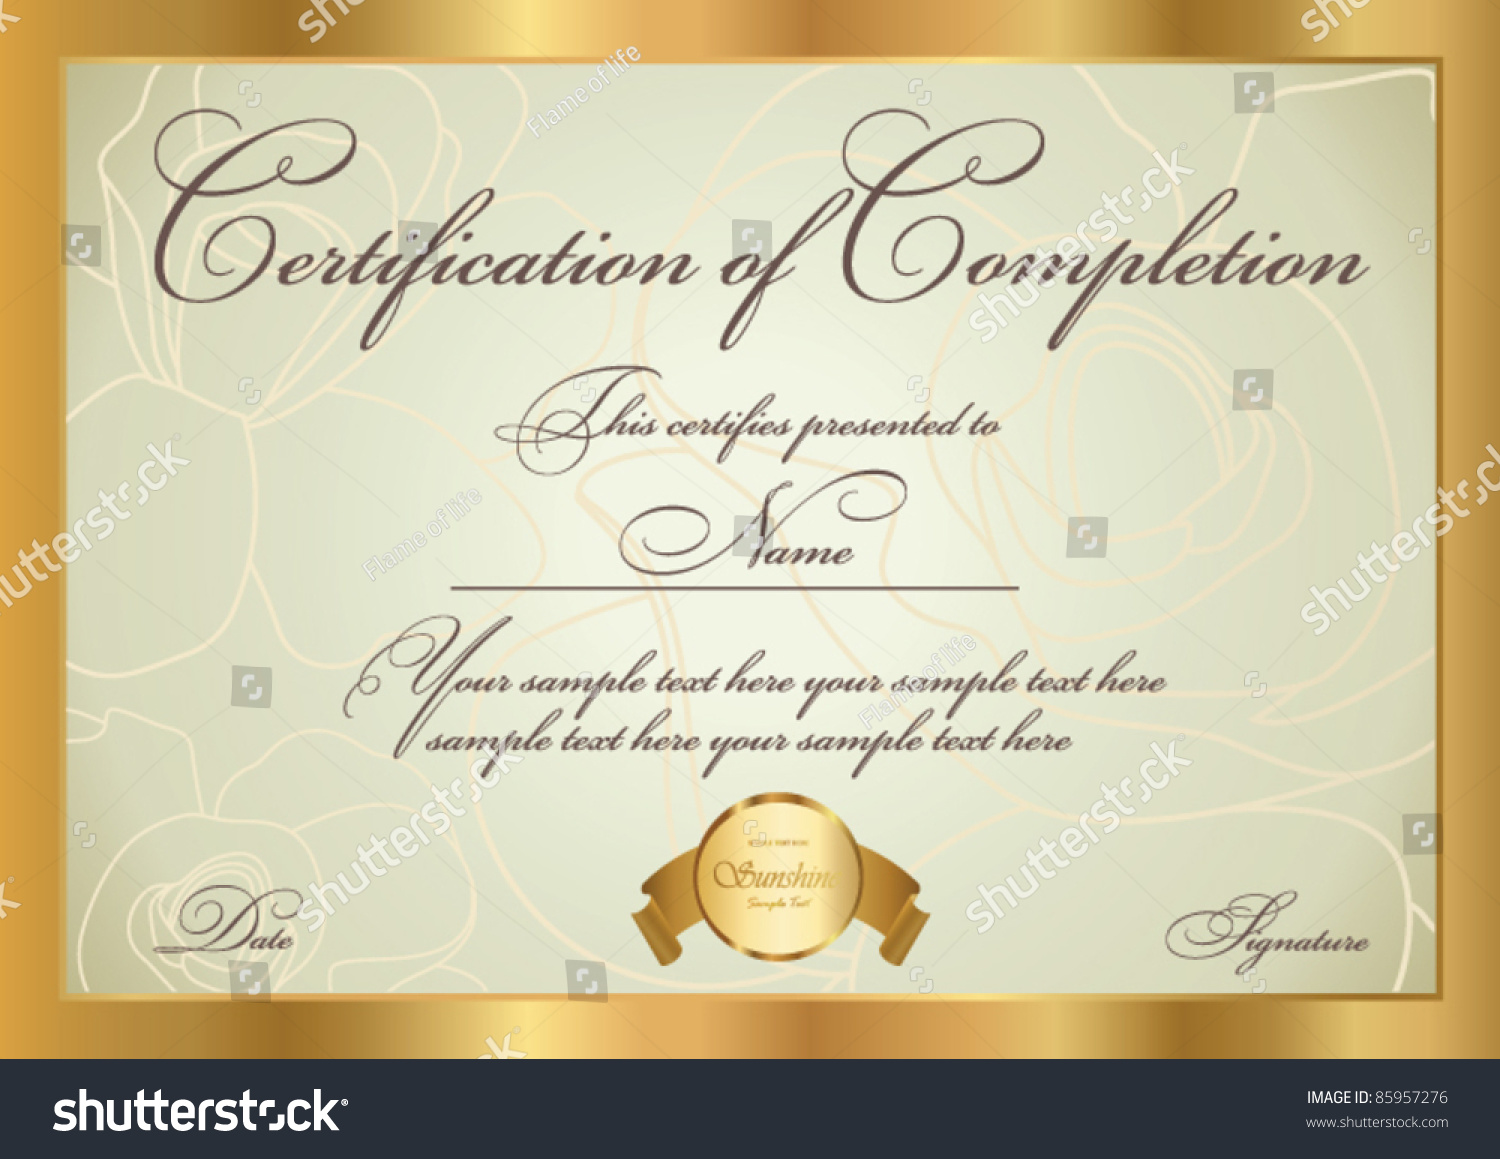 Horizontal Certificate Completion Template Golden Floral Stock Vector 85957276 Shutterstock